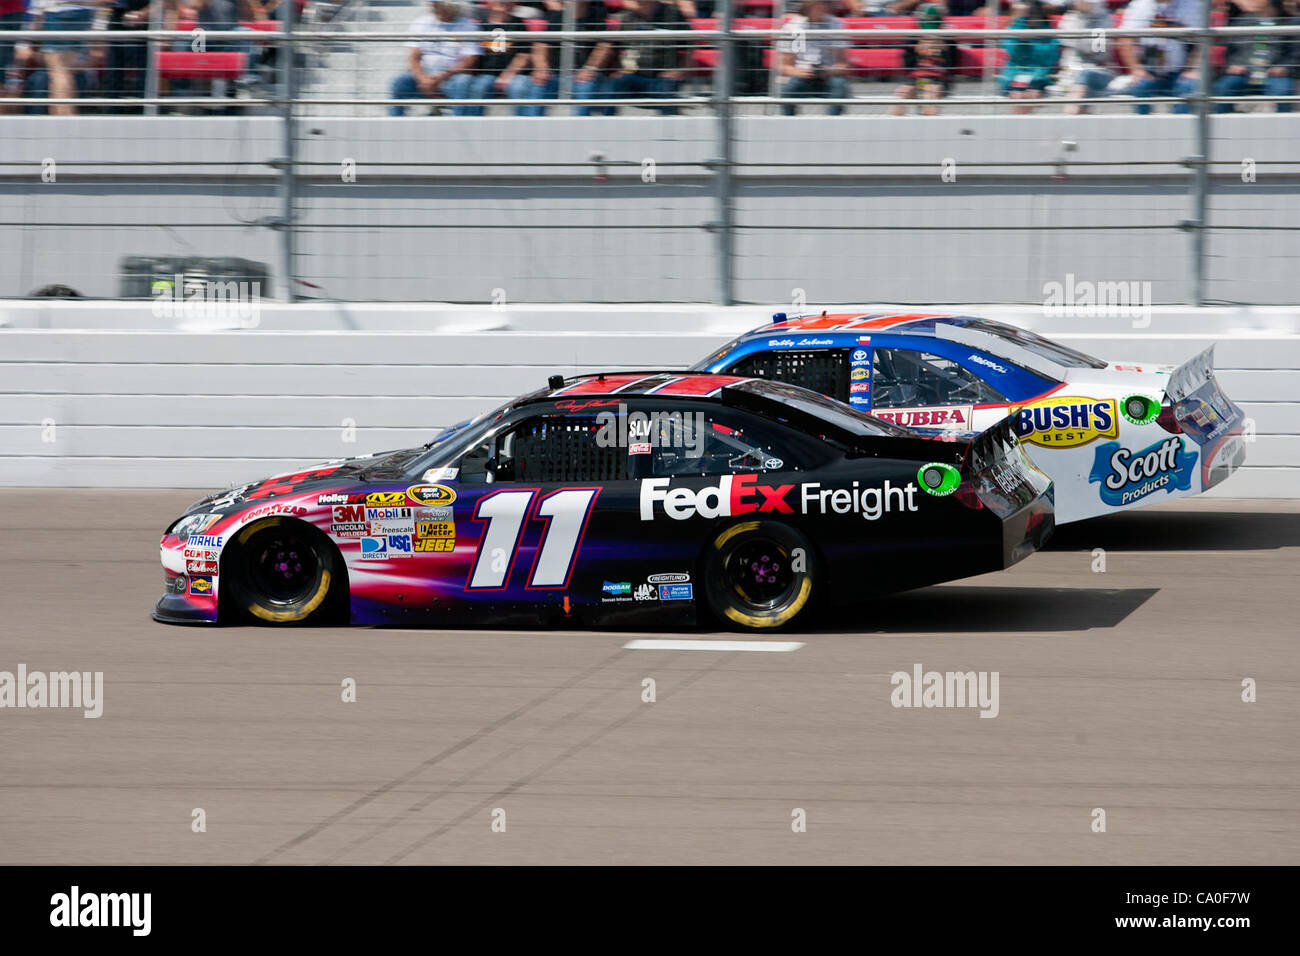 March 11, 2012 - Las Vegas, Nevada, U.S - Denny Hamlin, driver of the #11 FedEx Freight Toyota Camry, battles to - Stock Image